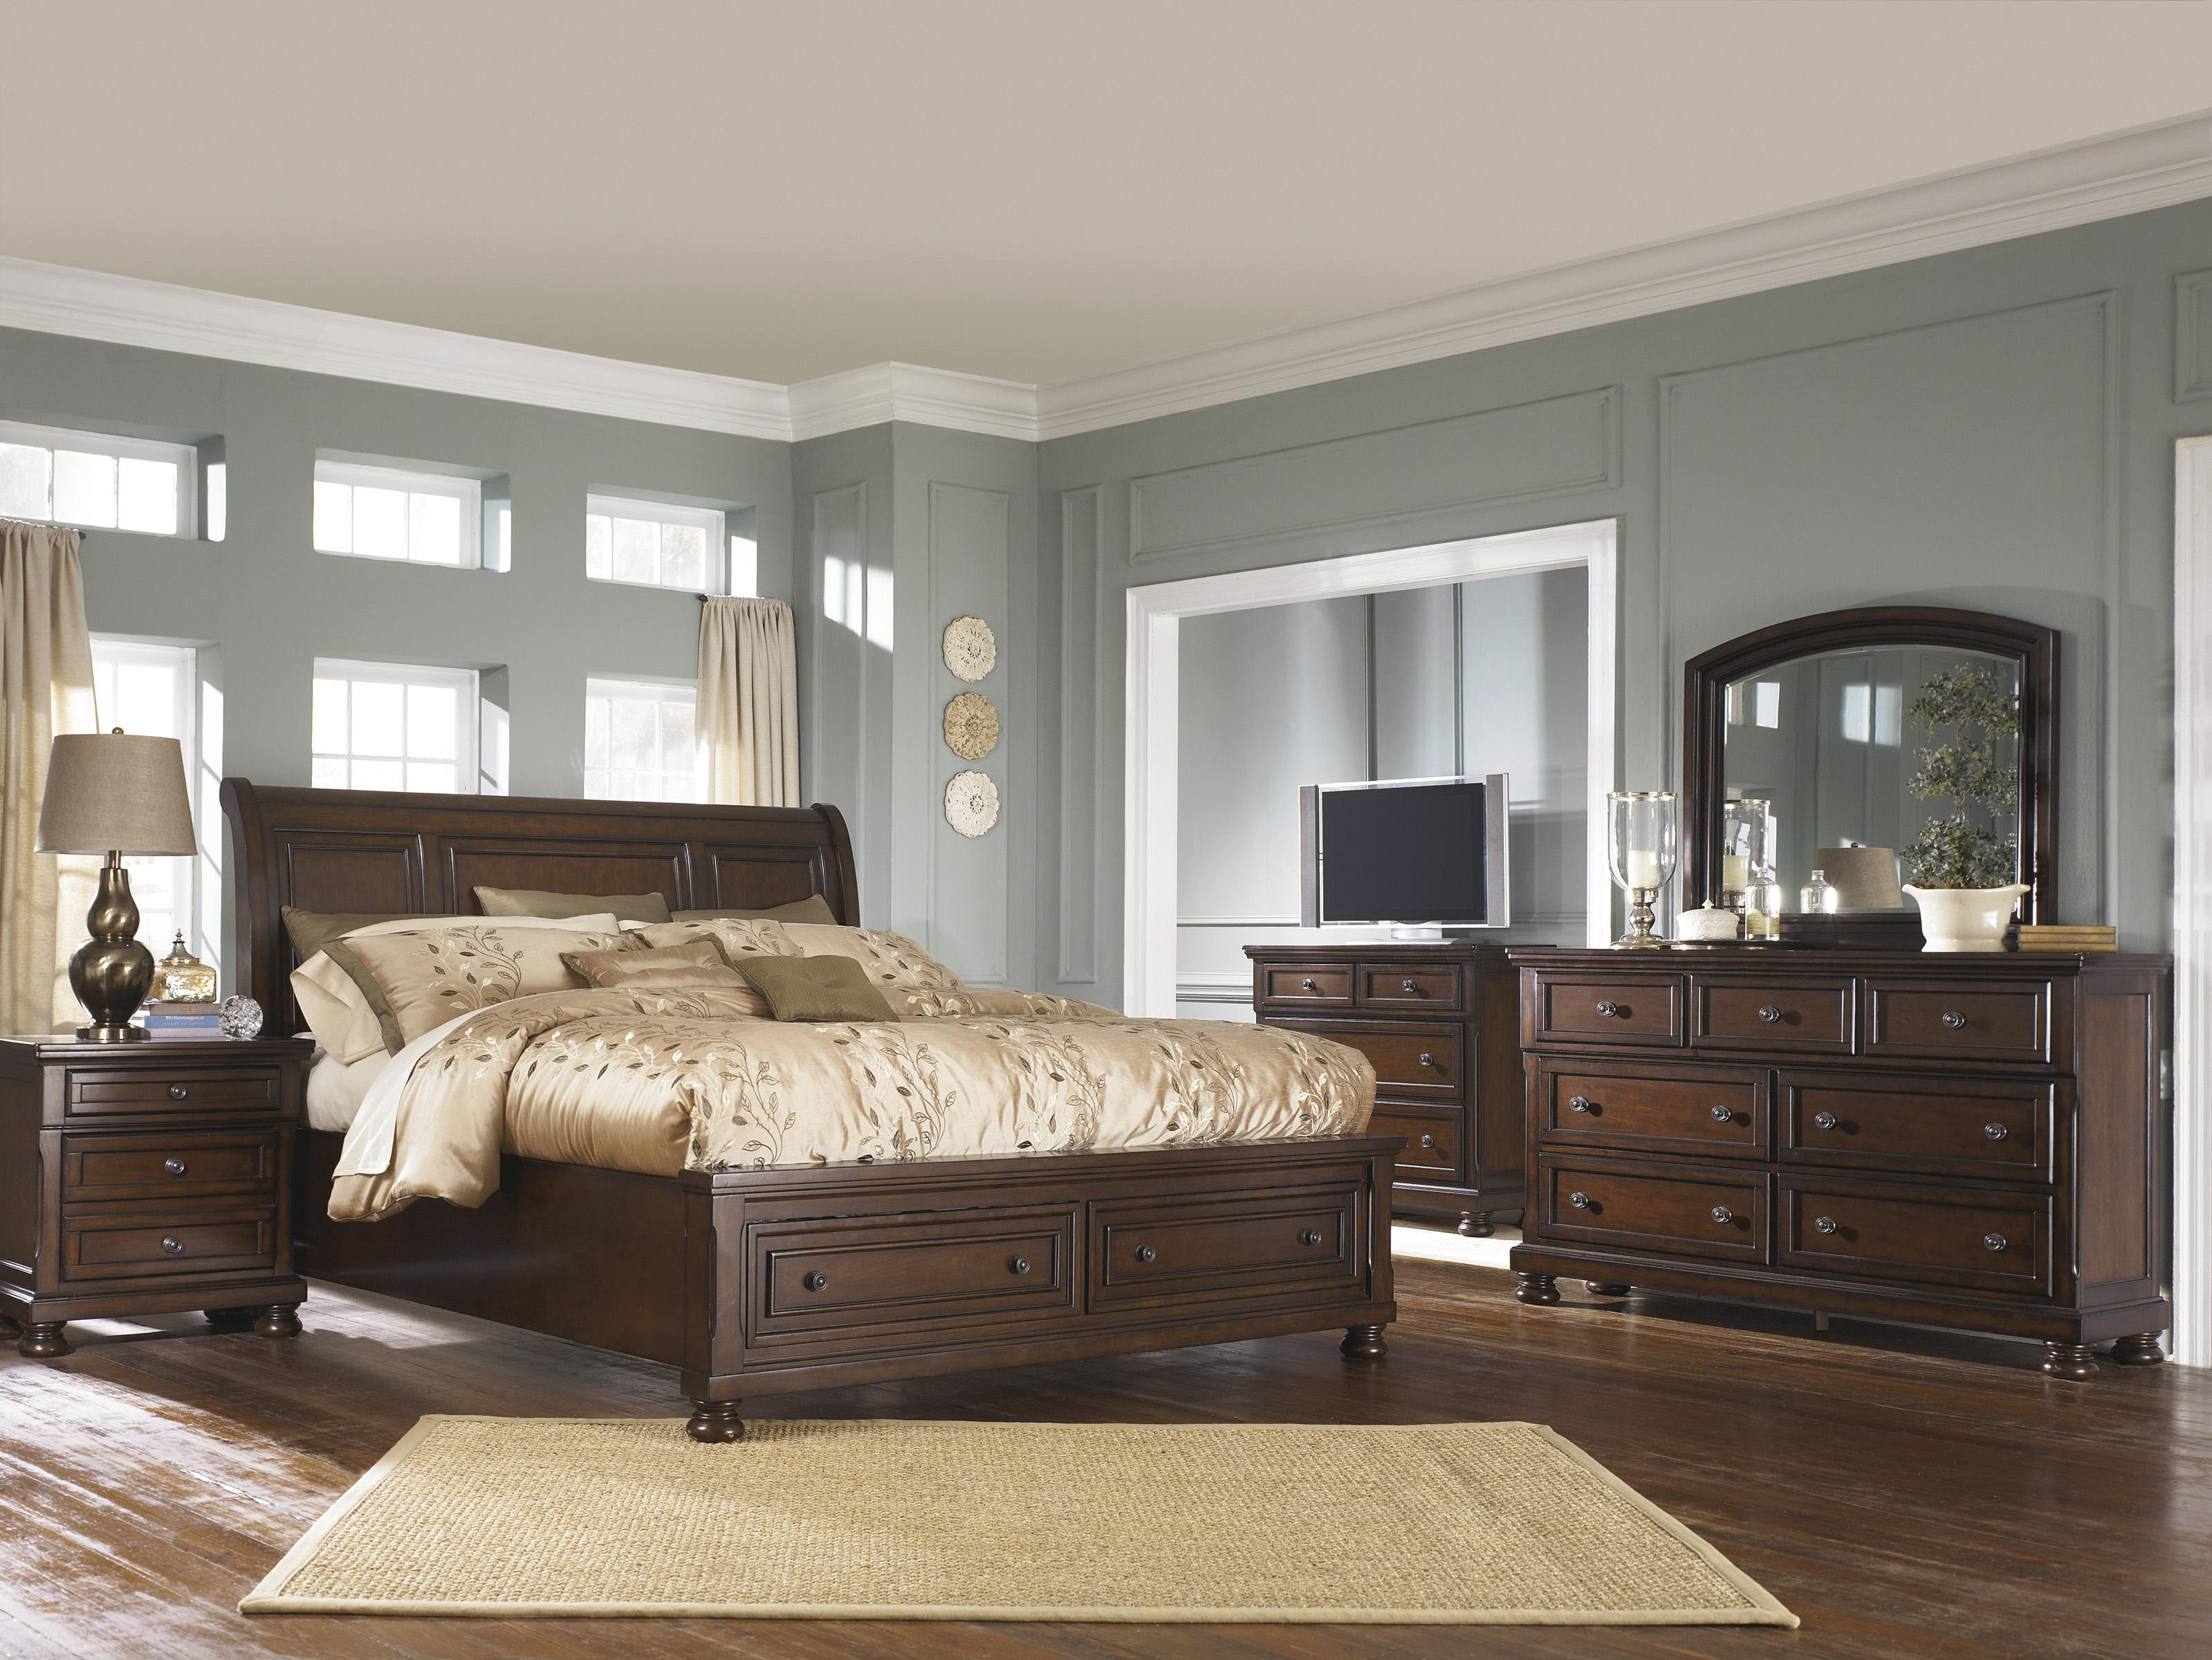 Ashley Furniture Porter House Queen Bedroom Group - Item Number: B697 Q Bedroom Group 4